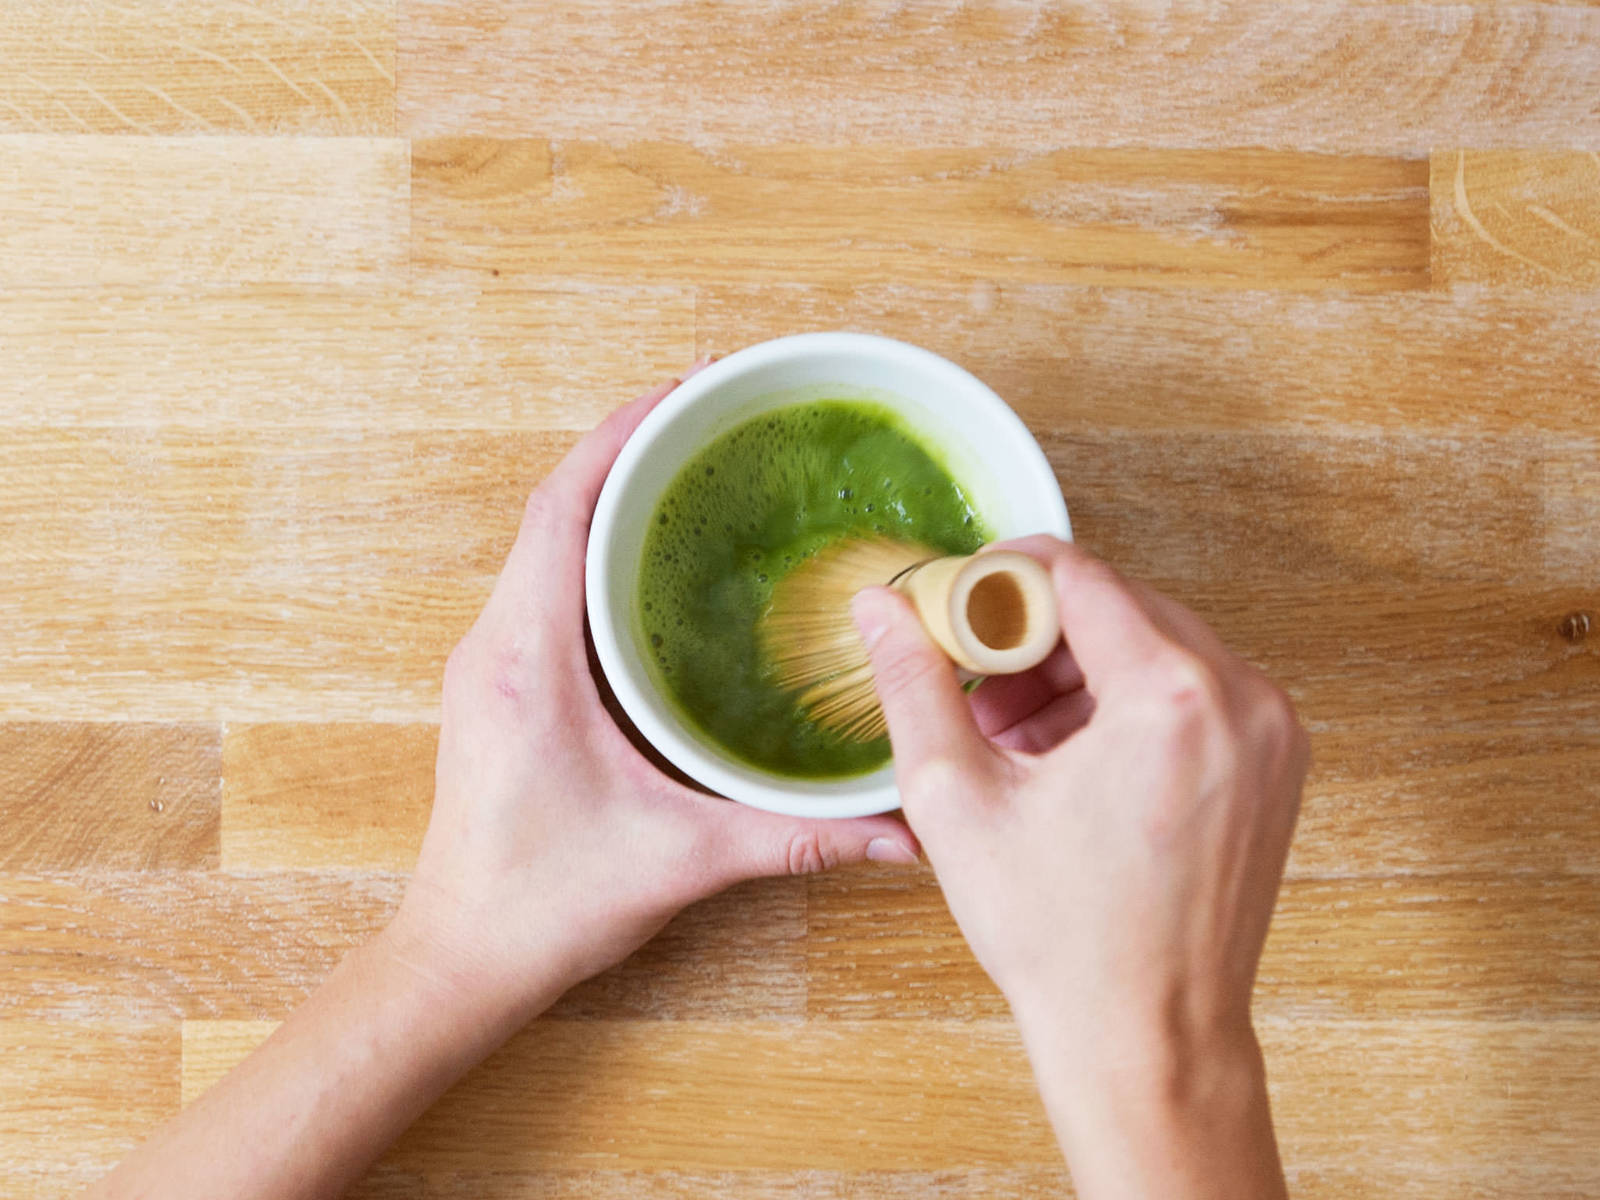 Boil water and let cool down for approx. 5 min. In a small bowl, add matcha and 2 tbsp of hot water. Carefully stir with the help pf a matcha whisk until paste-like. Add remaining water and whisk without pressure for approx. 30 – 60 sec.